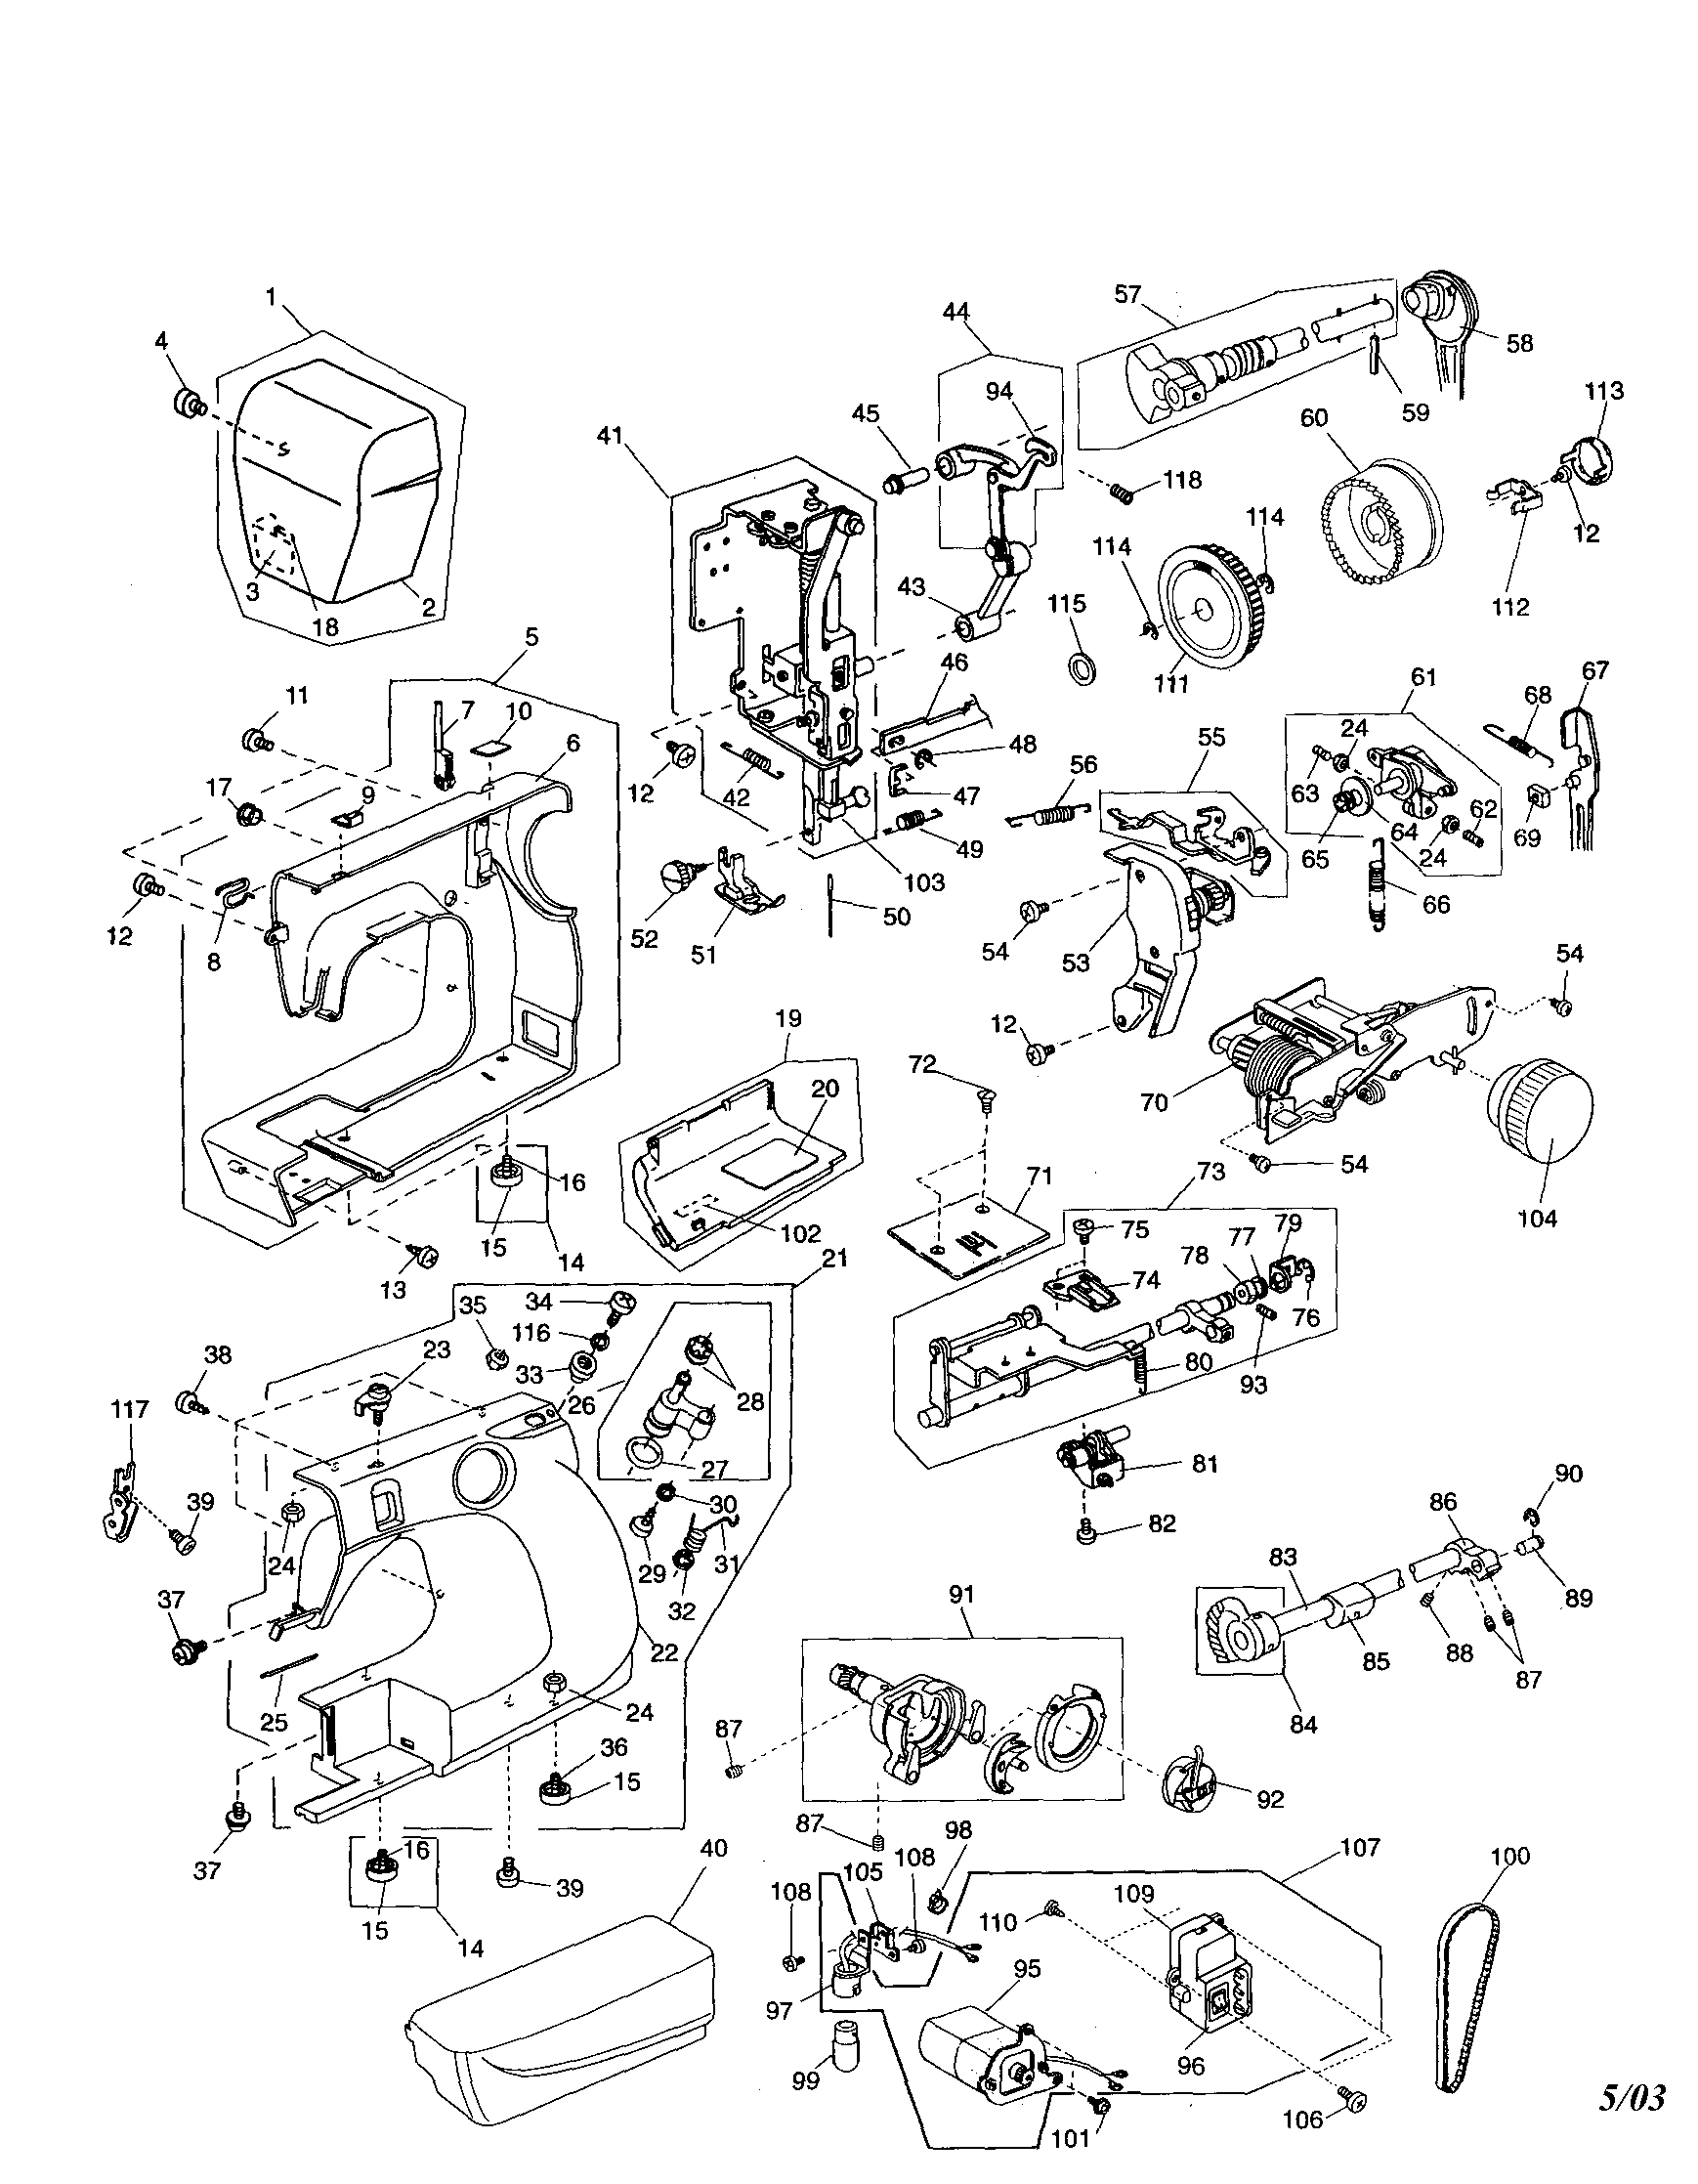 singer sewing machine parts diagram   35 wiring diagram